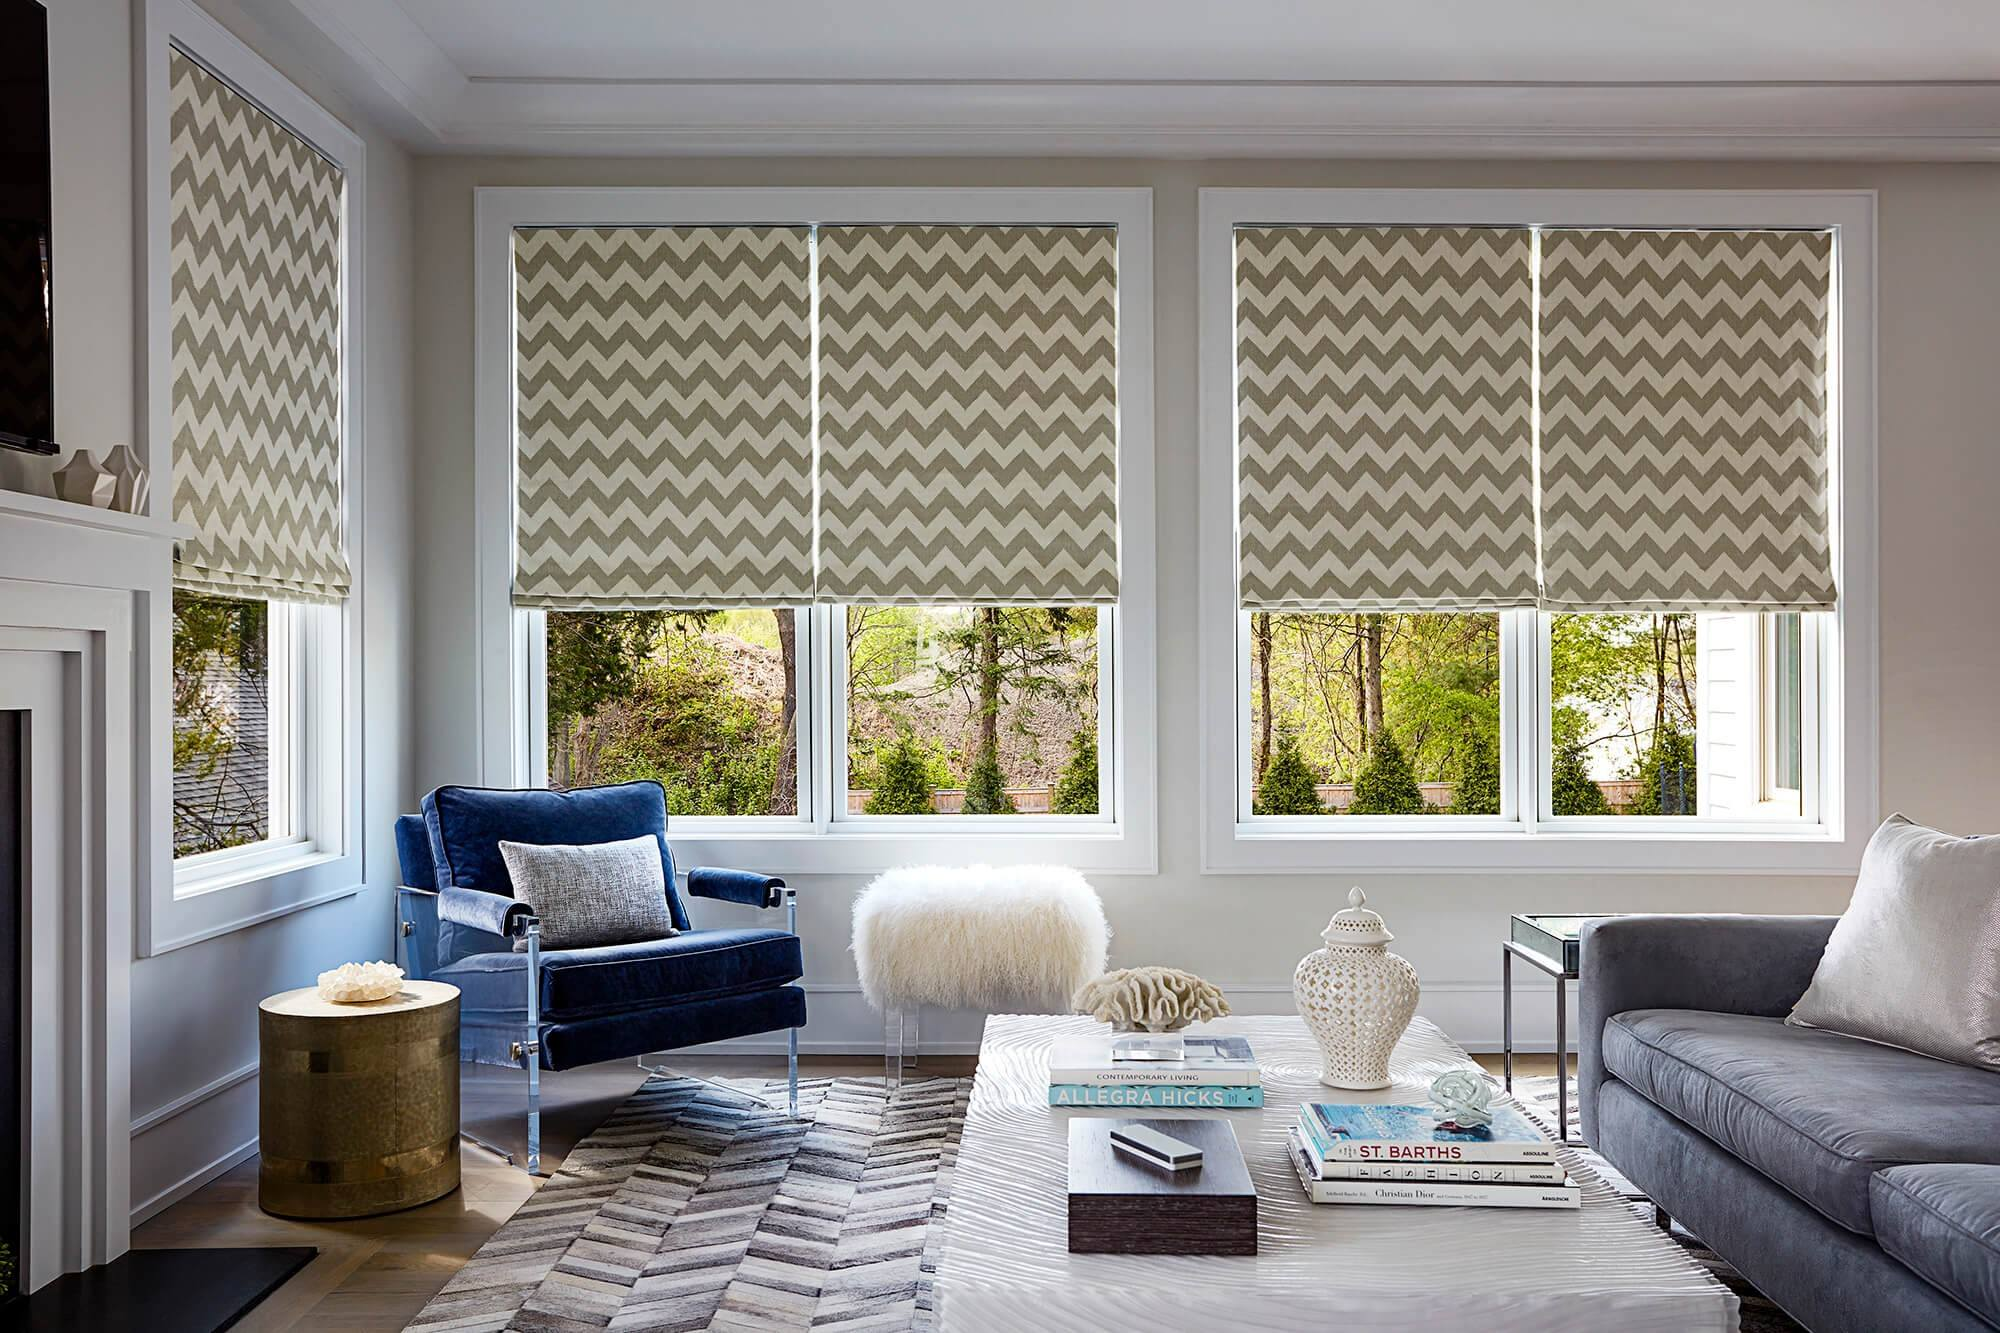 Wavy curtains in the modern designed white interior of the living